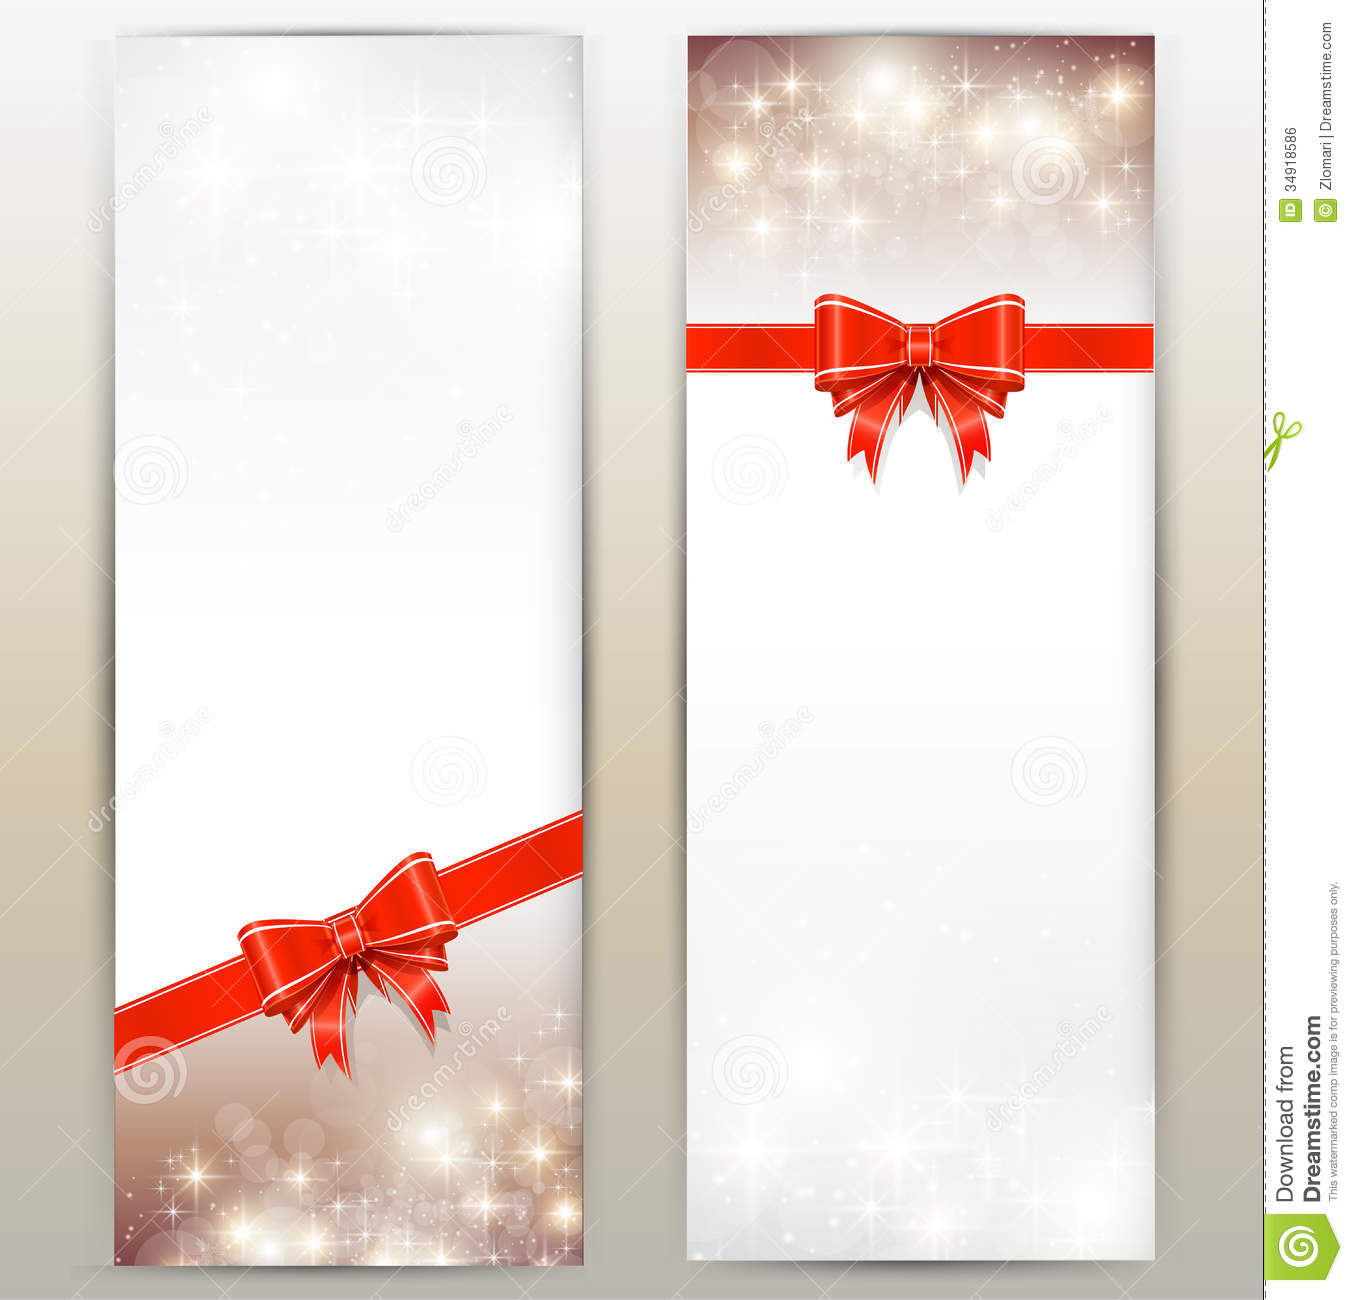 Invitation christmas cards with red bows.